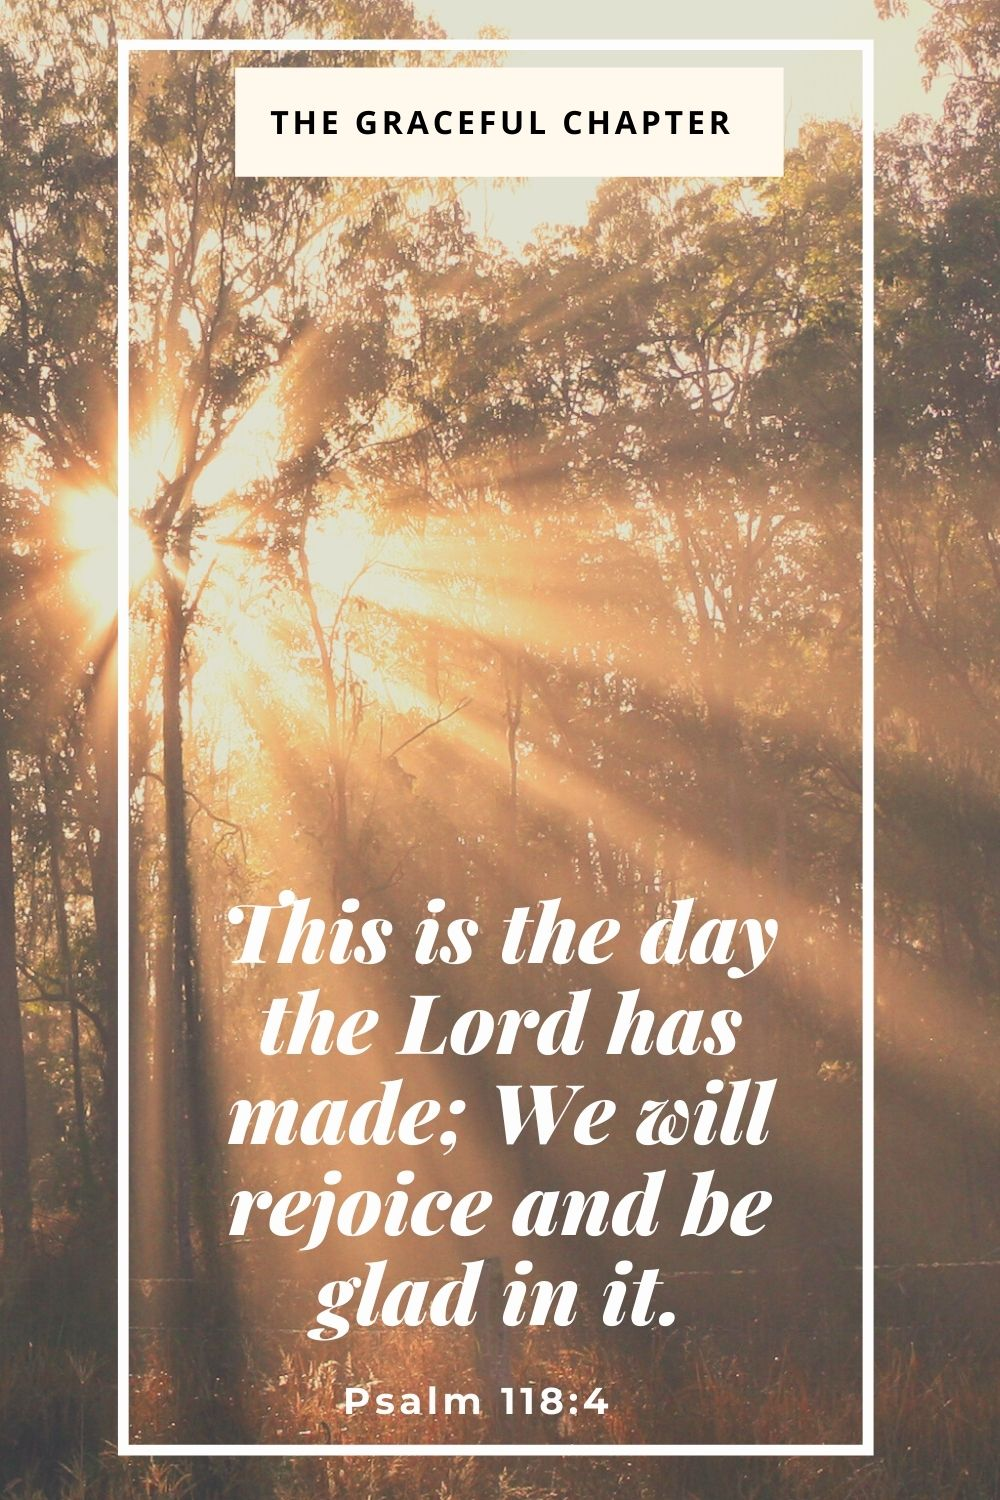 This is the day the Lord has made; We will rejoice and be glad in it. Psalm 118:4